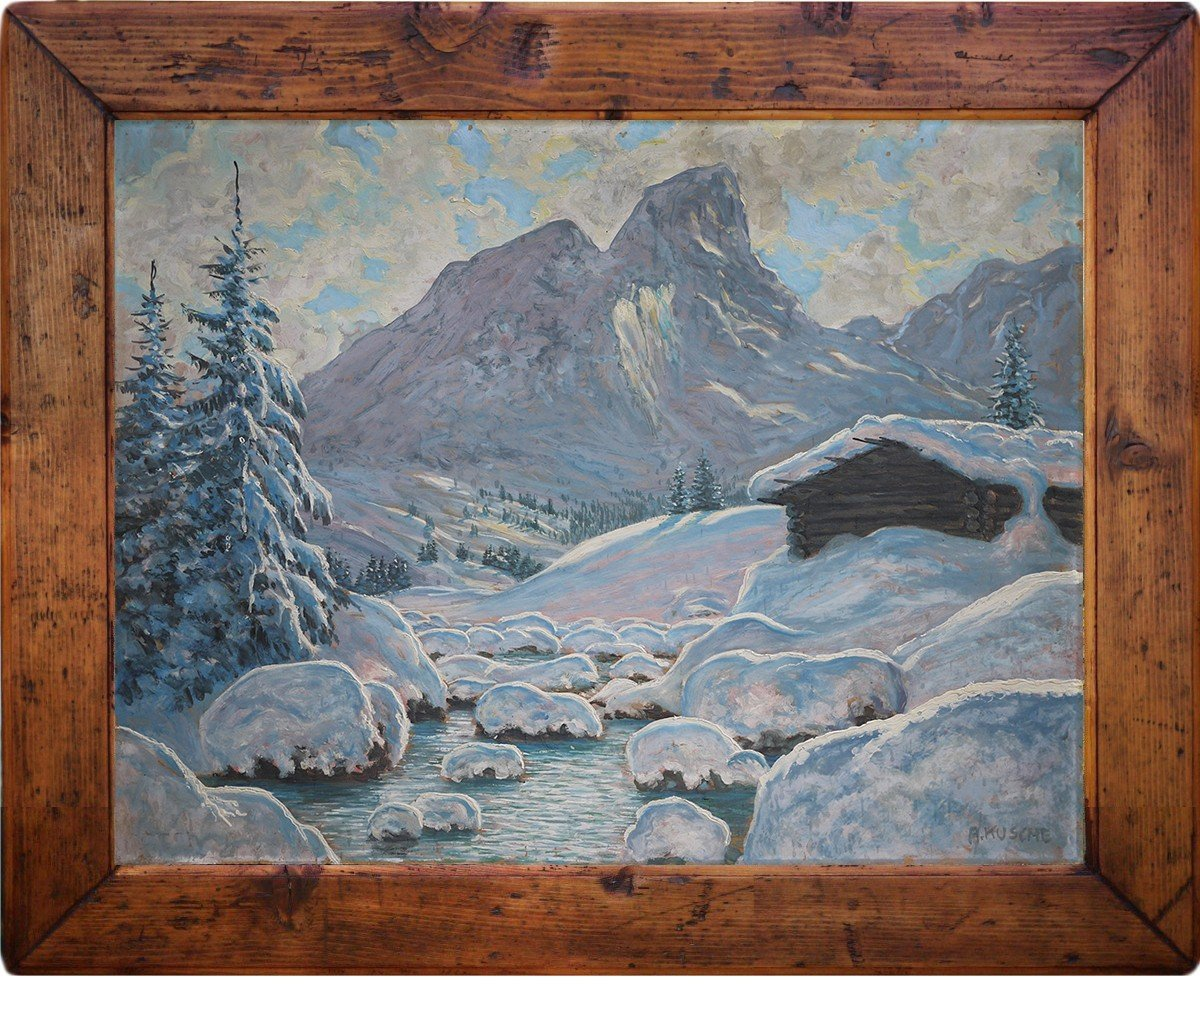 Hiver Au Tyrol, Paysage Enneigé - Alfred Kusche